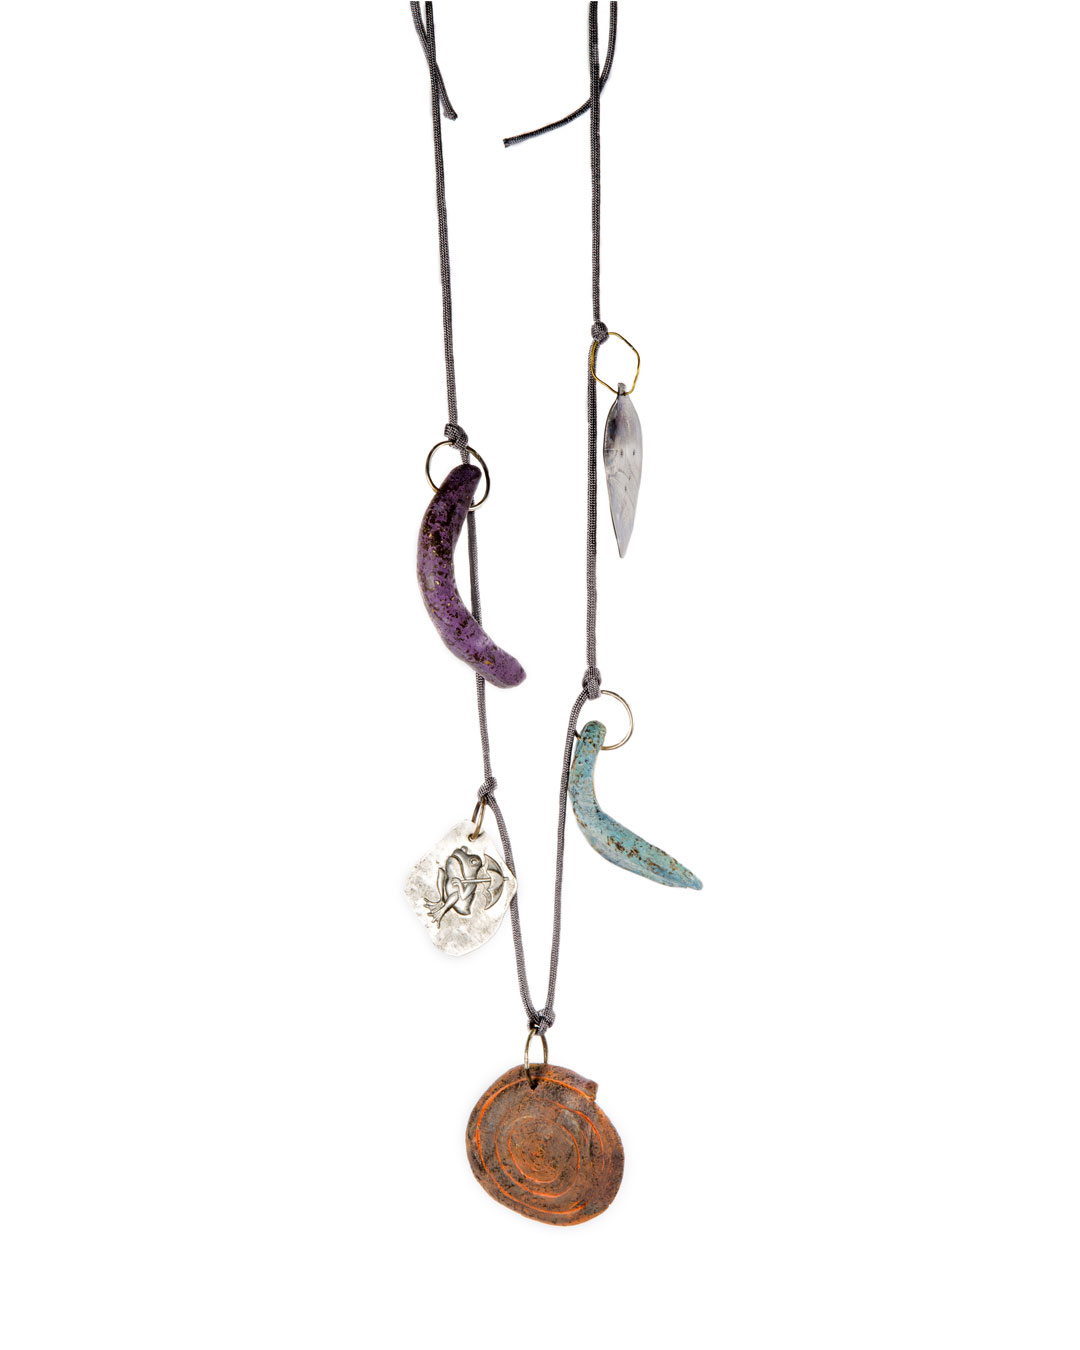 Julia Walter, Beach Necklace, 2019, necklace;  painted clay, silver, nylon string, aluminium, steel, L 500 mm, €875